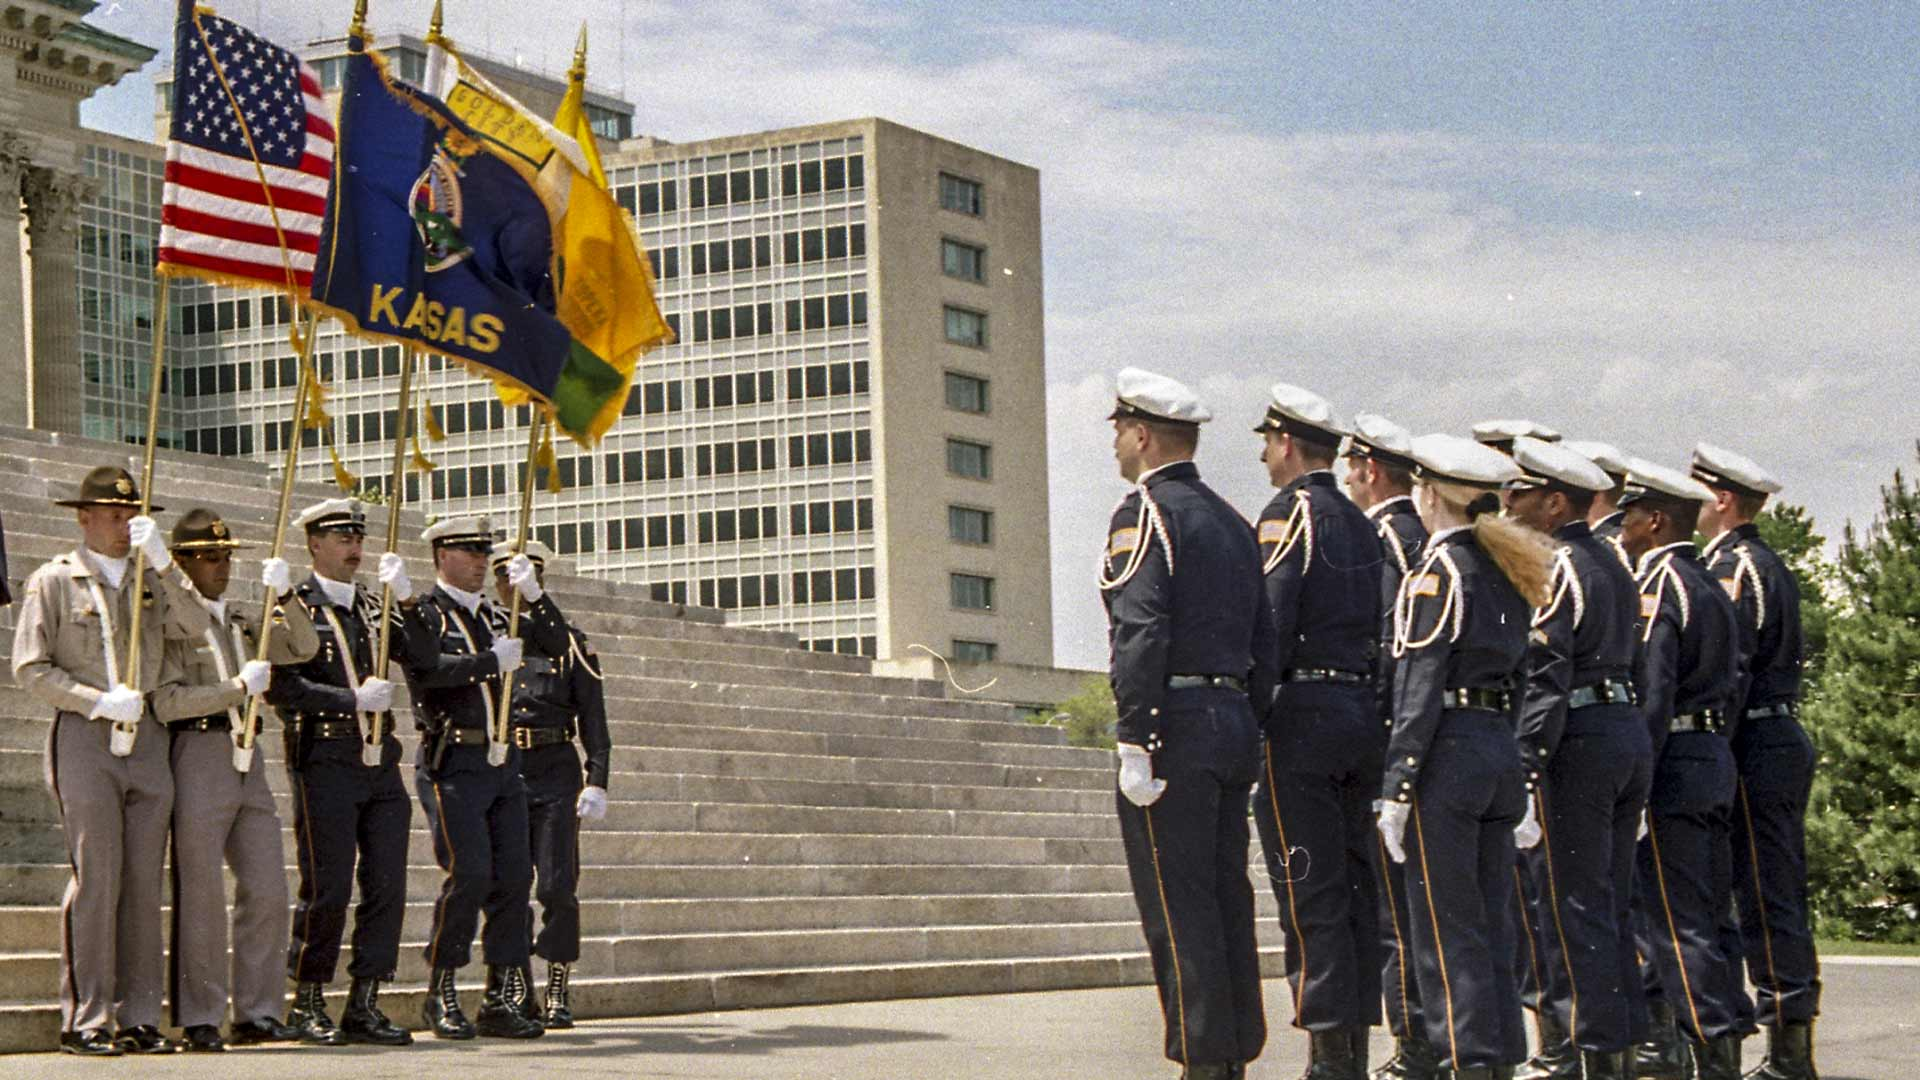 Officers and flags Layer-7